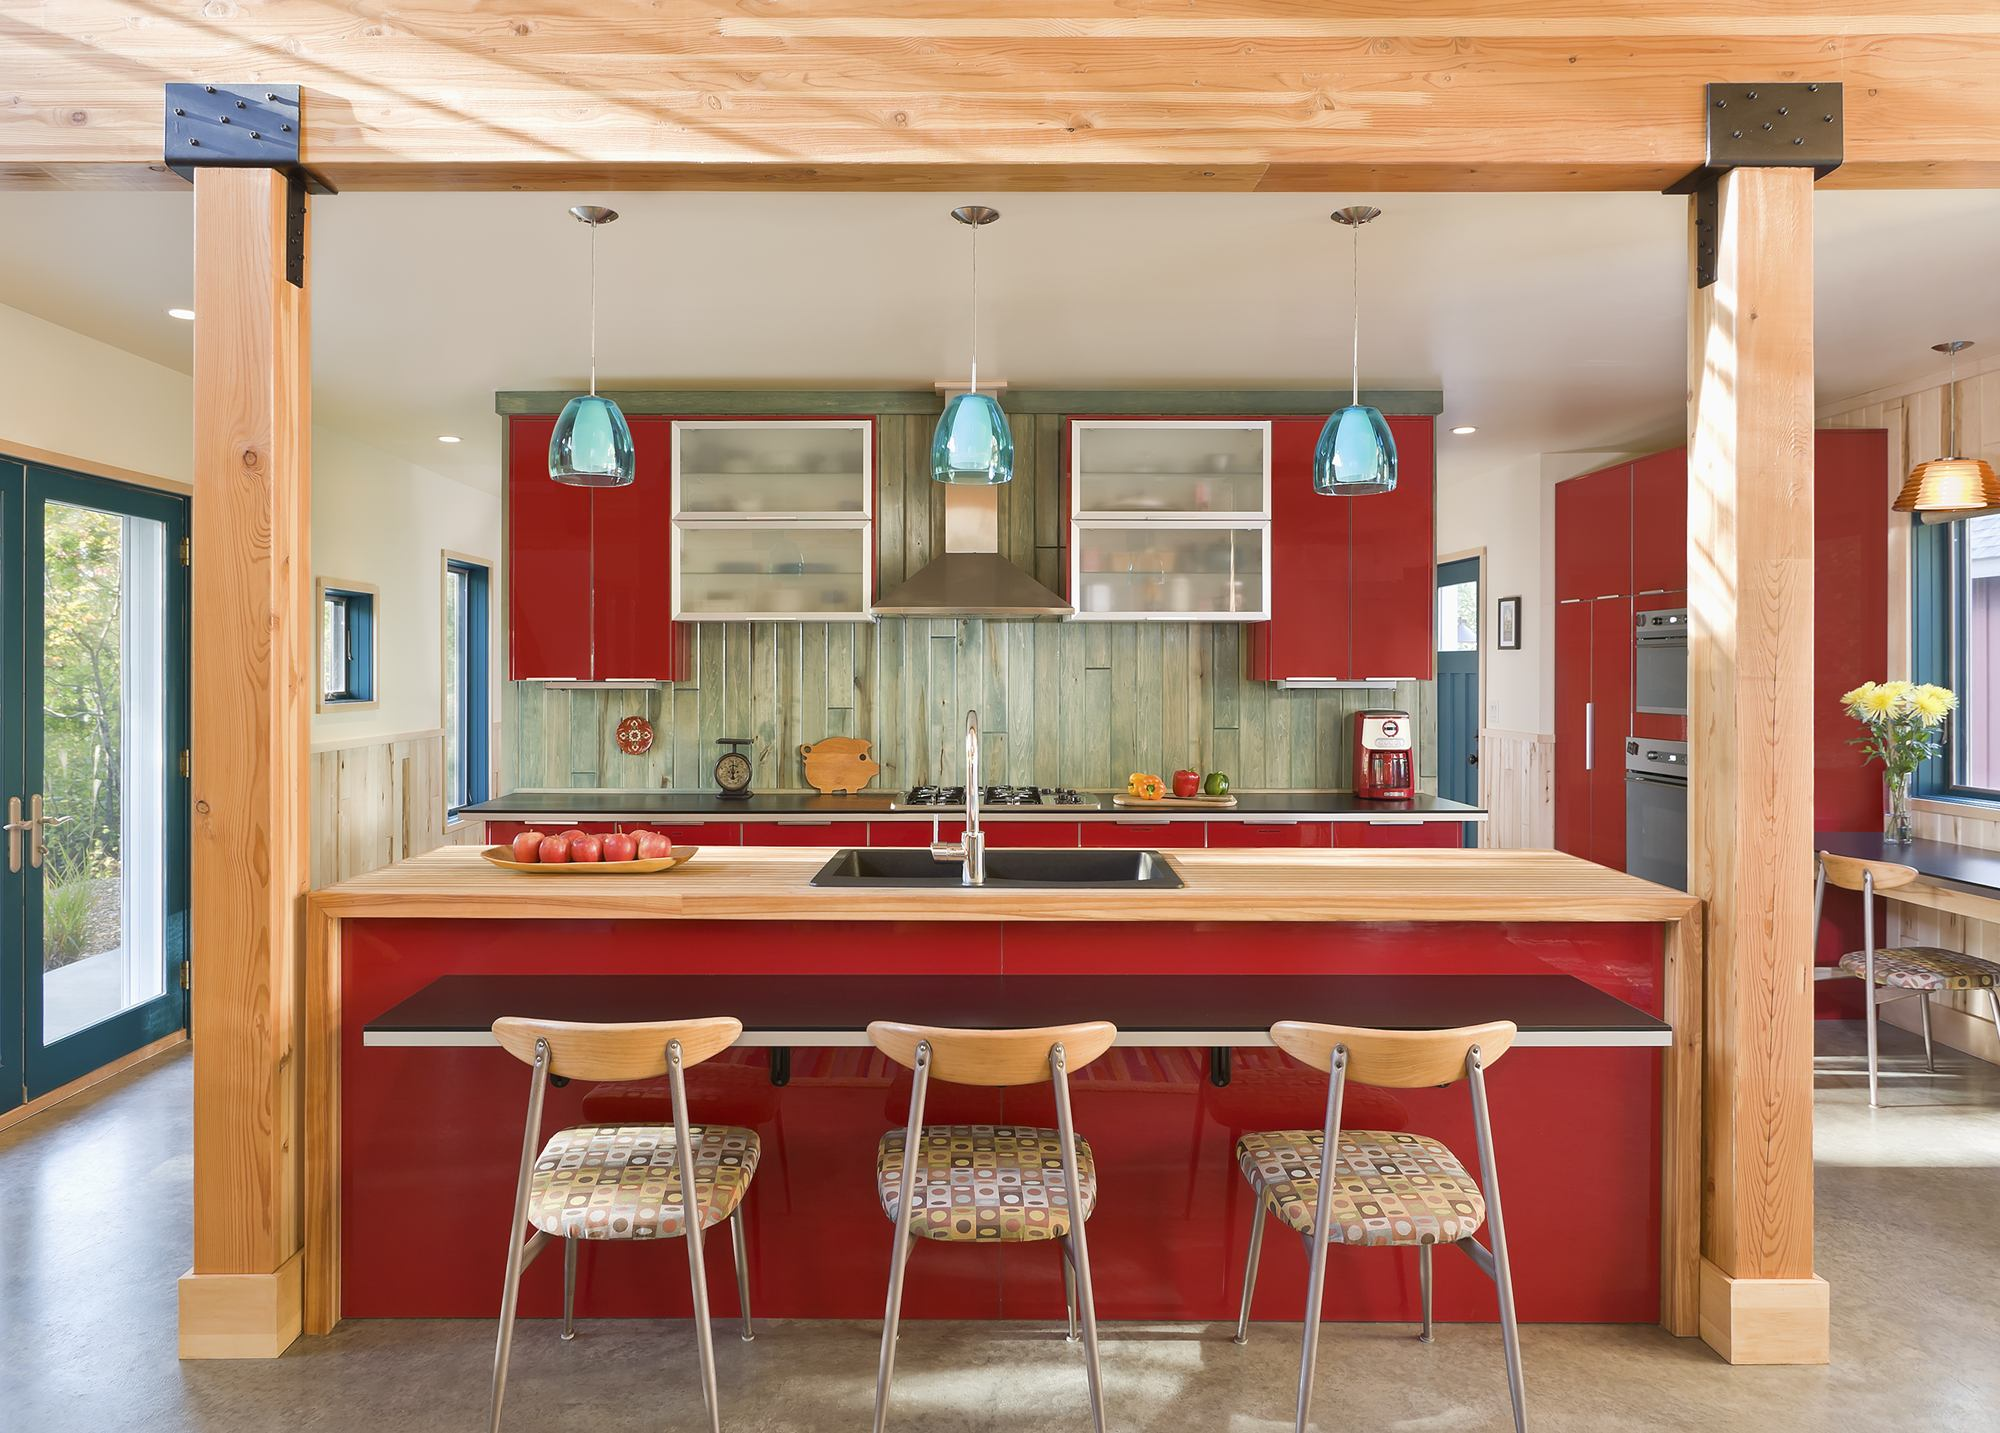 trendy-style-for-red-kitchen-design-ideas-with-rectangular-kitchen-island-combined-natural-brown-unfinished-wooden-top-and-floating-dinnete-added-fabric-pattern-seat-dining-chairs-as-well-as-kitchen-c